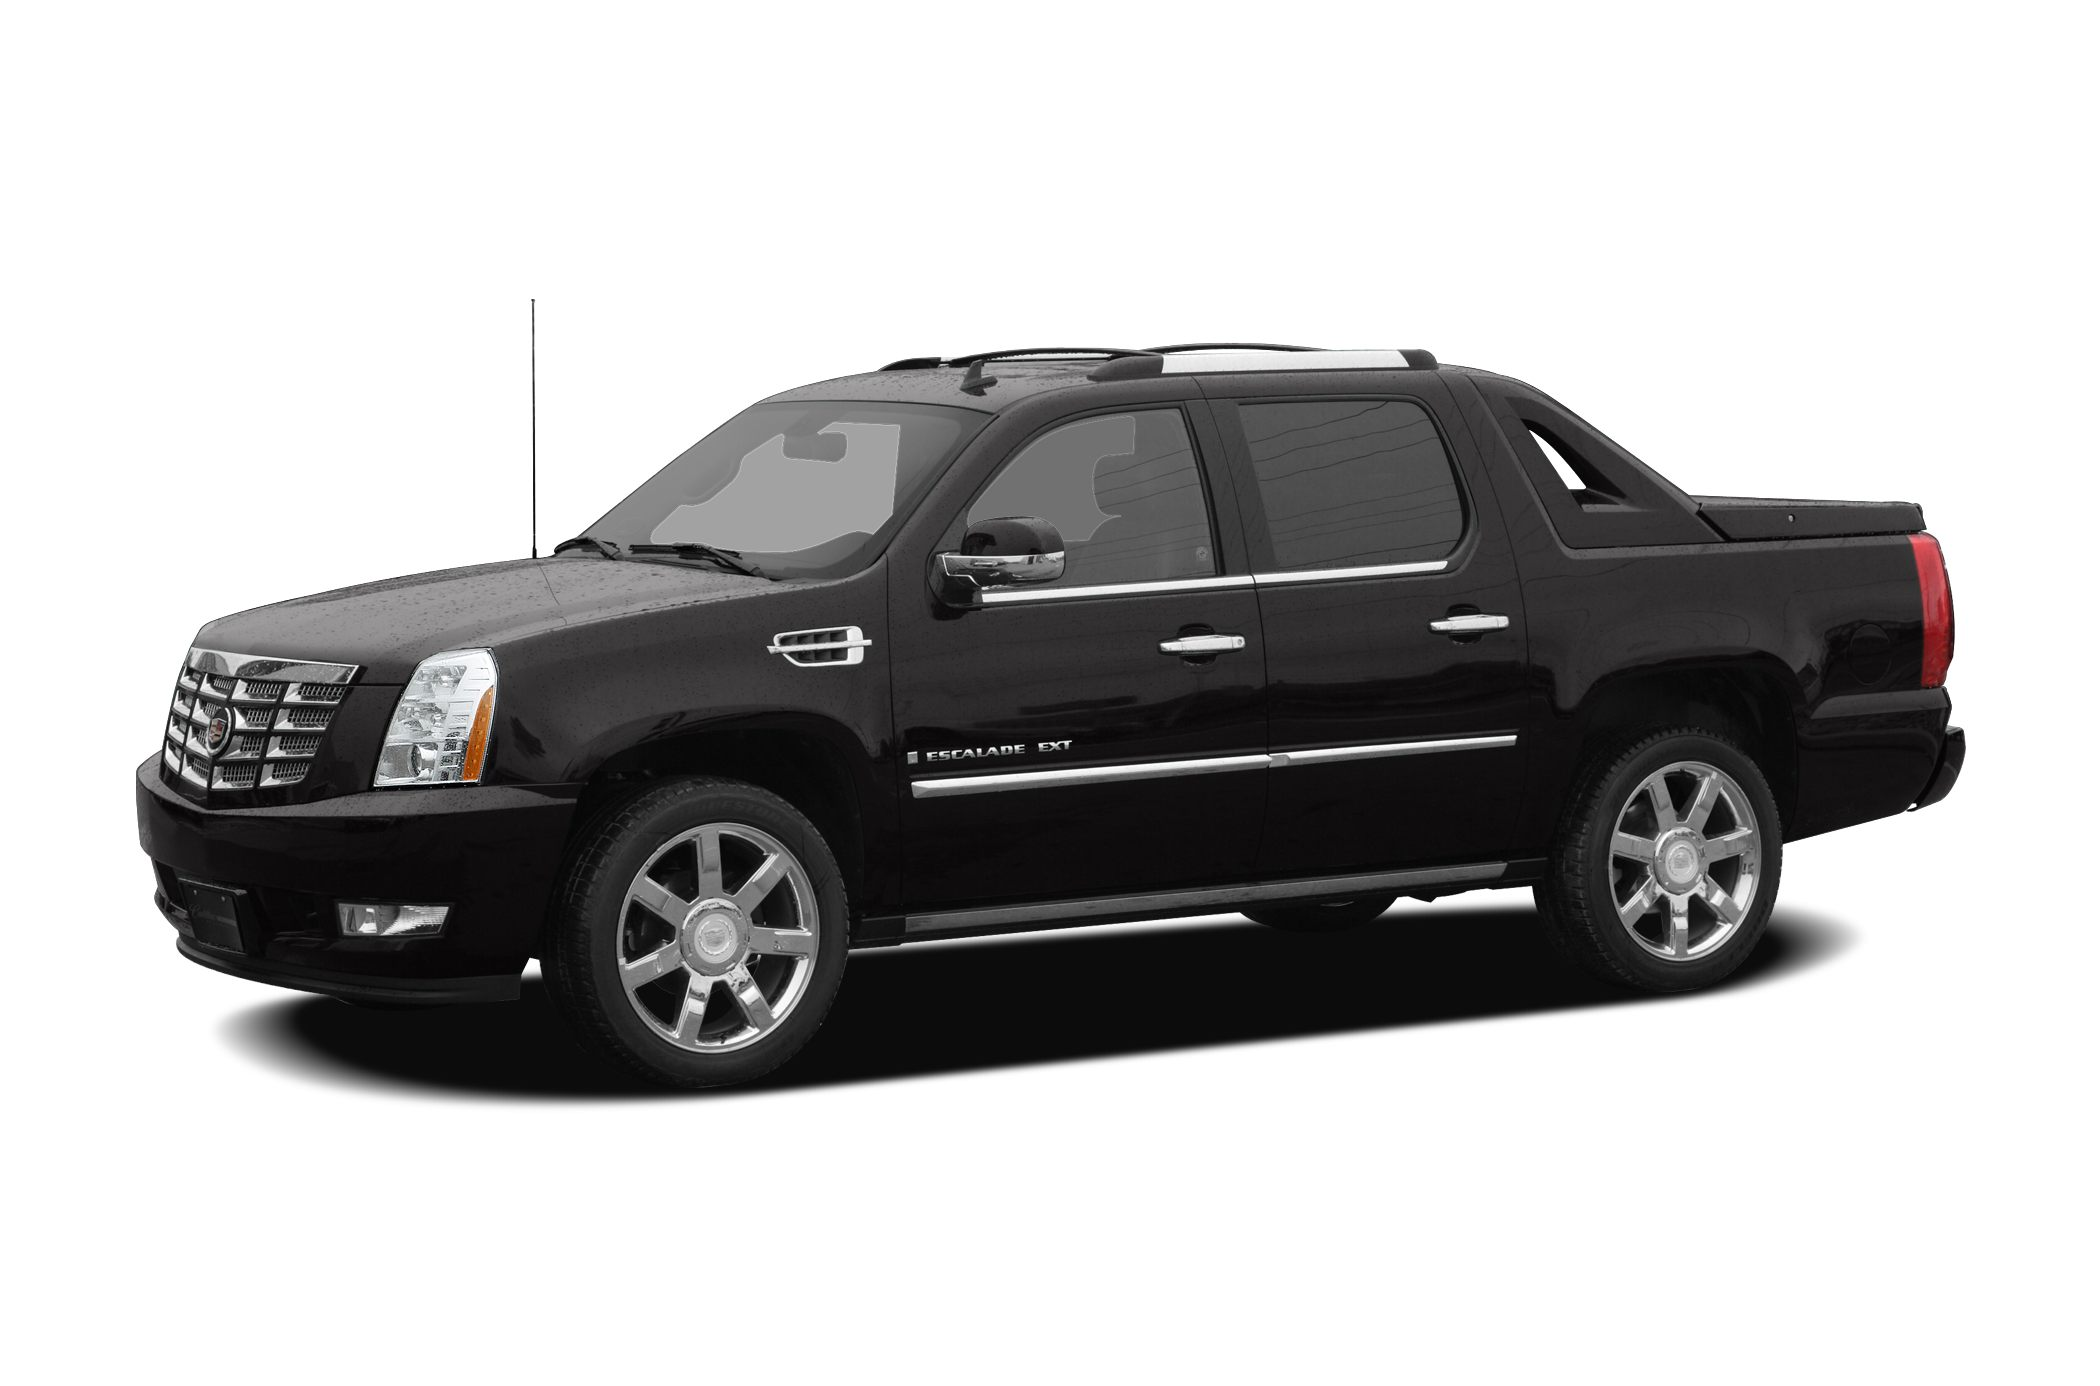 2008 Cadillac Escalade EXT Crew Cab Pickup for sale in Wichita for $30,988 with 77,789 miles